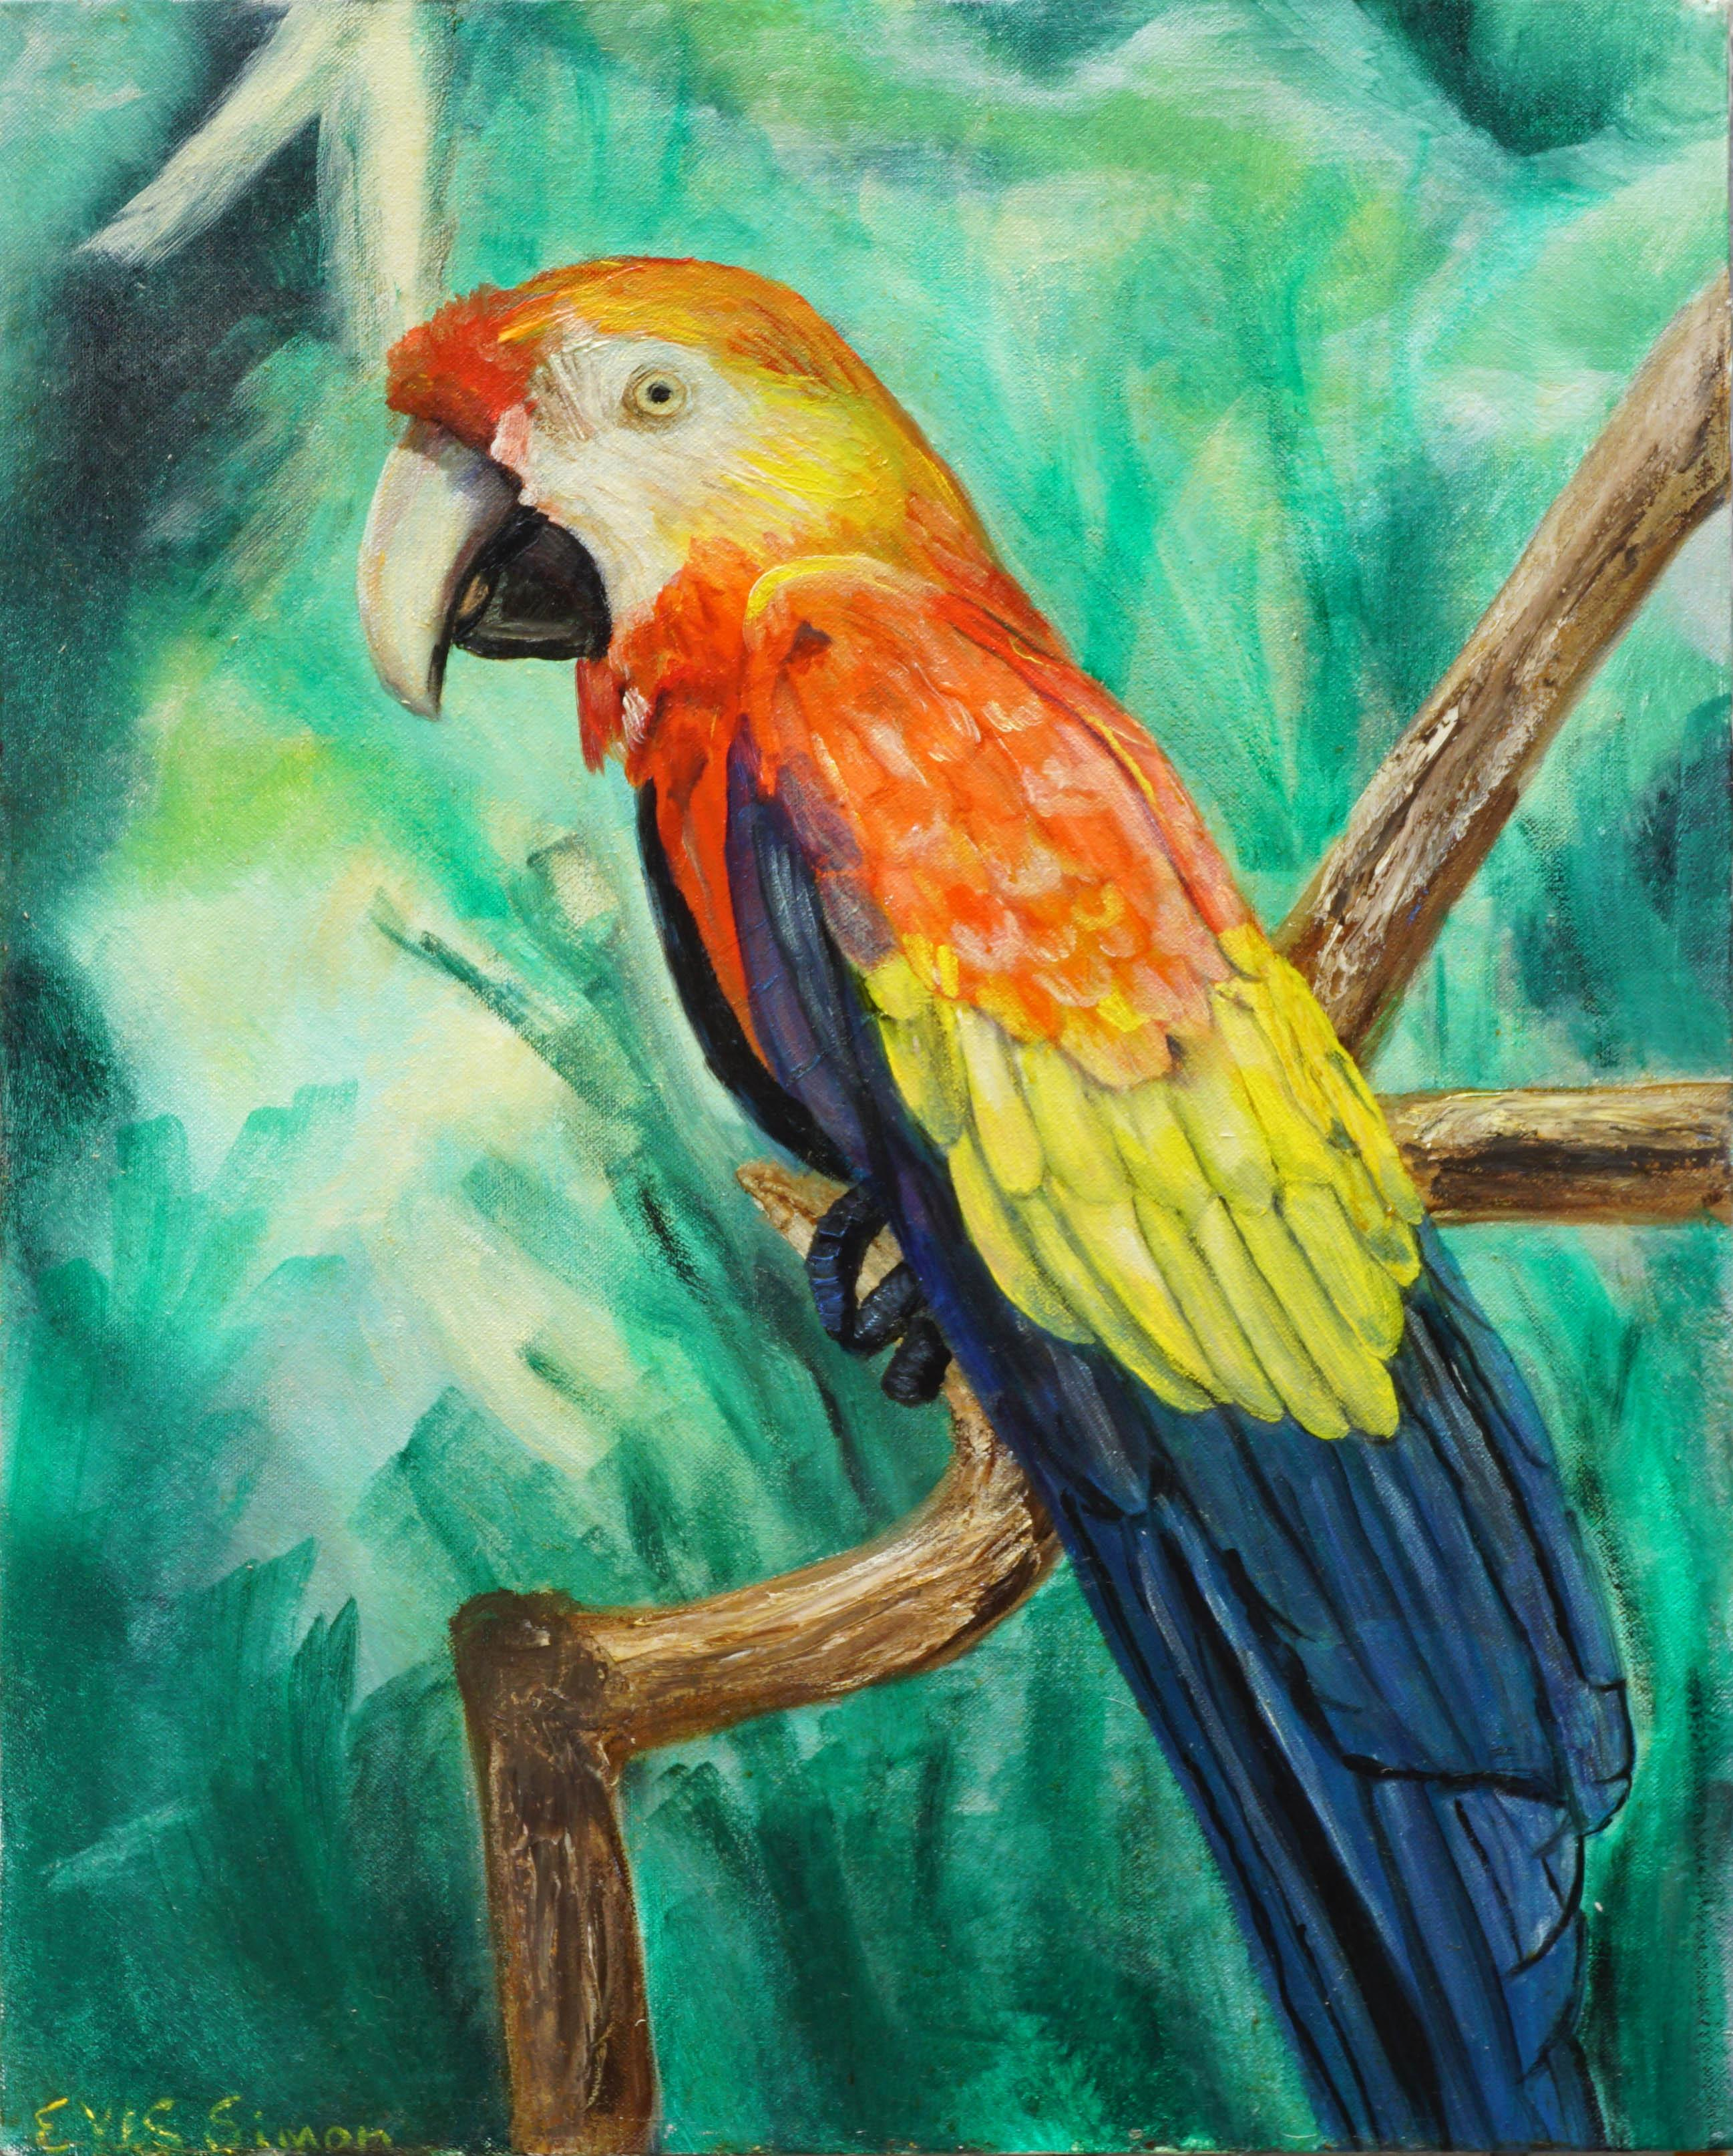 Tropical Macaw Parrot in the Jungle